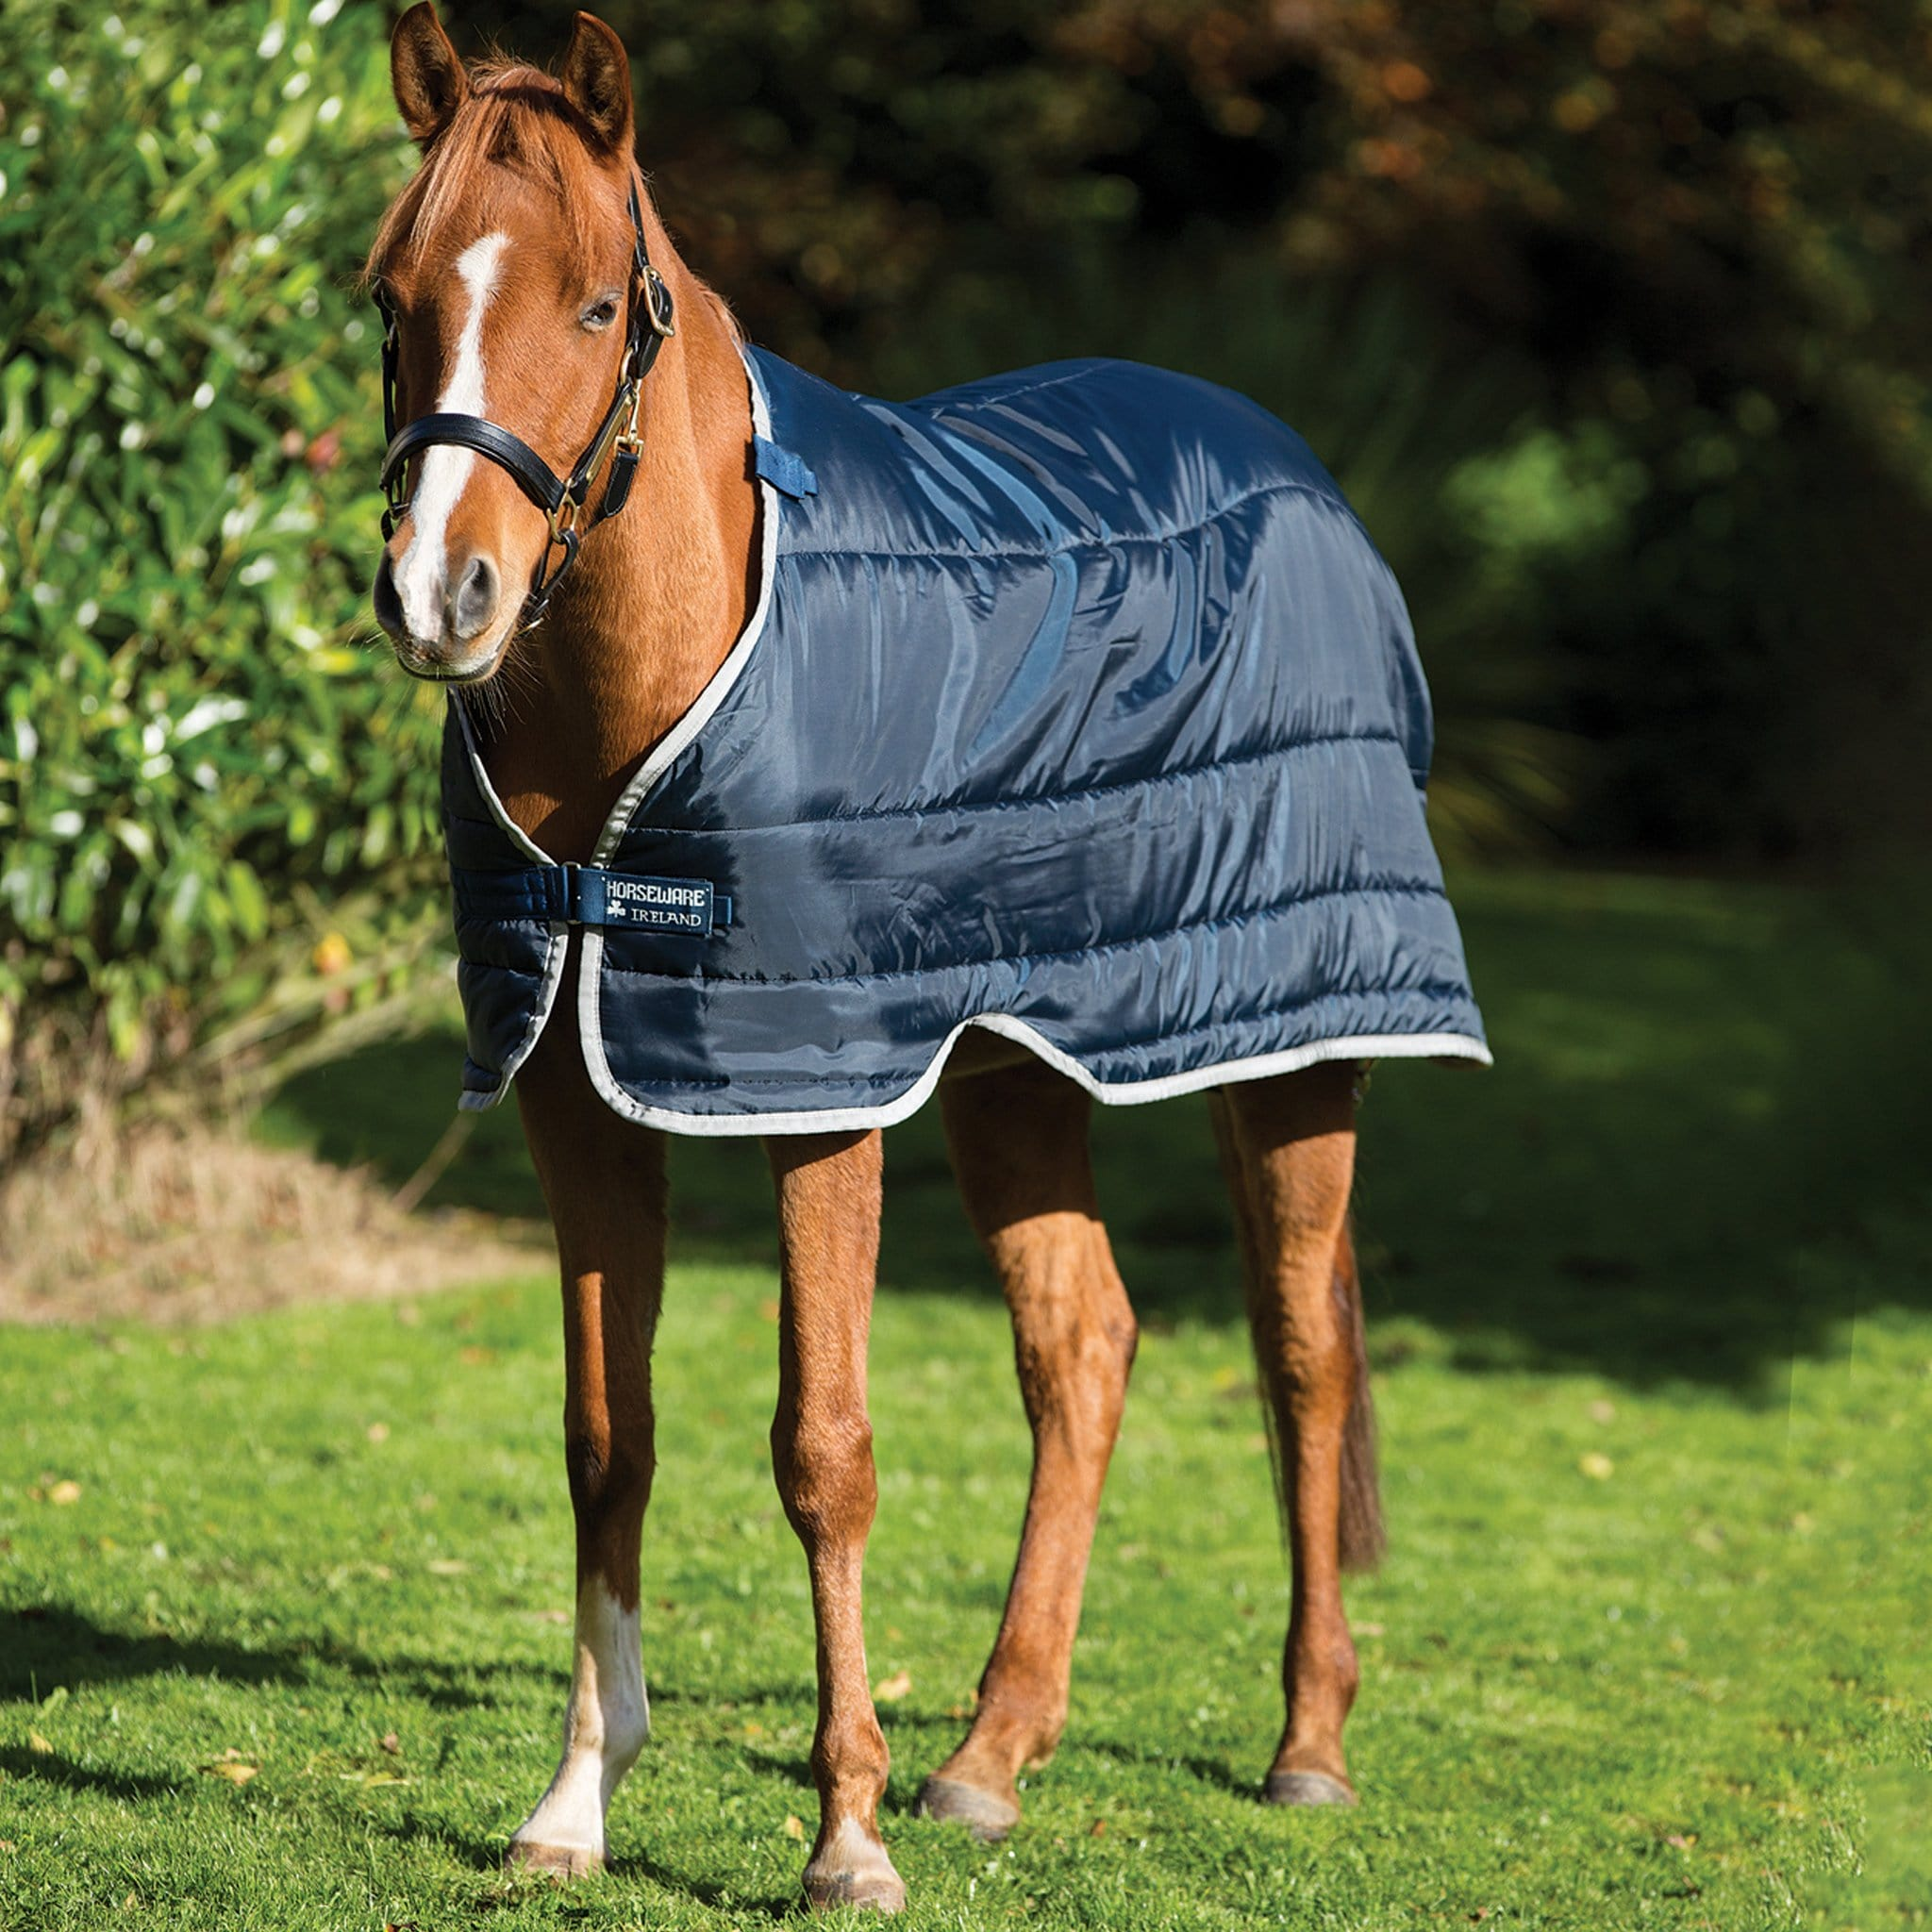 Horseware Lightweight 100g Pony Liner On Horse Front View ABADP1.